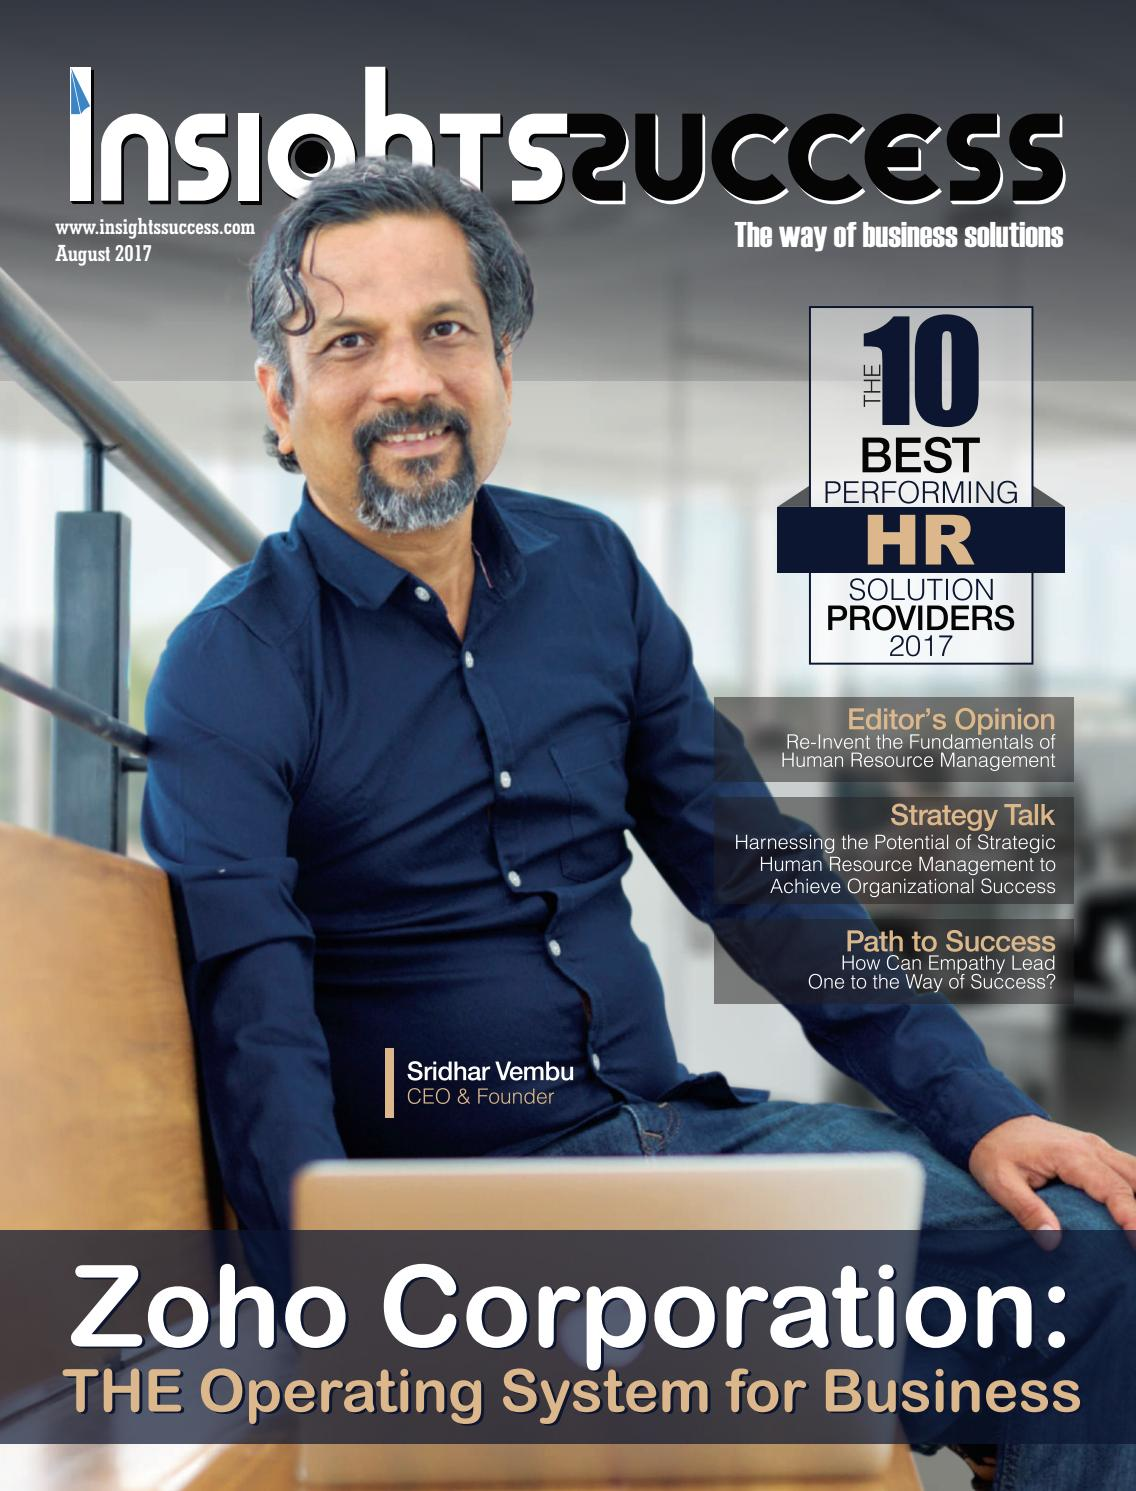 Insightssuccess the 10 best performing hr solution providers